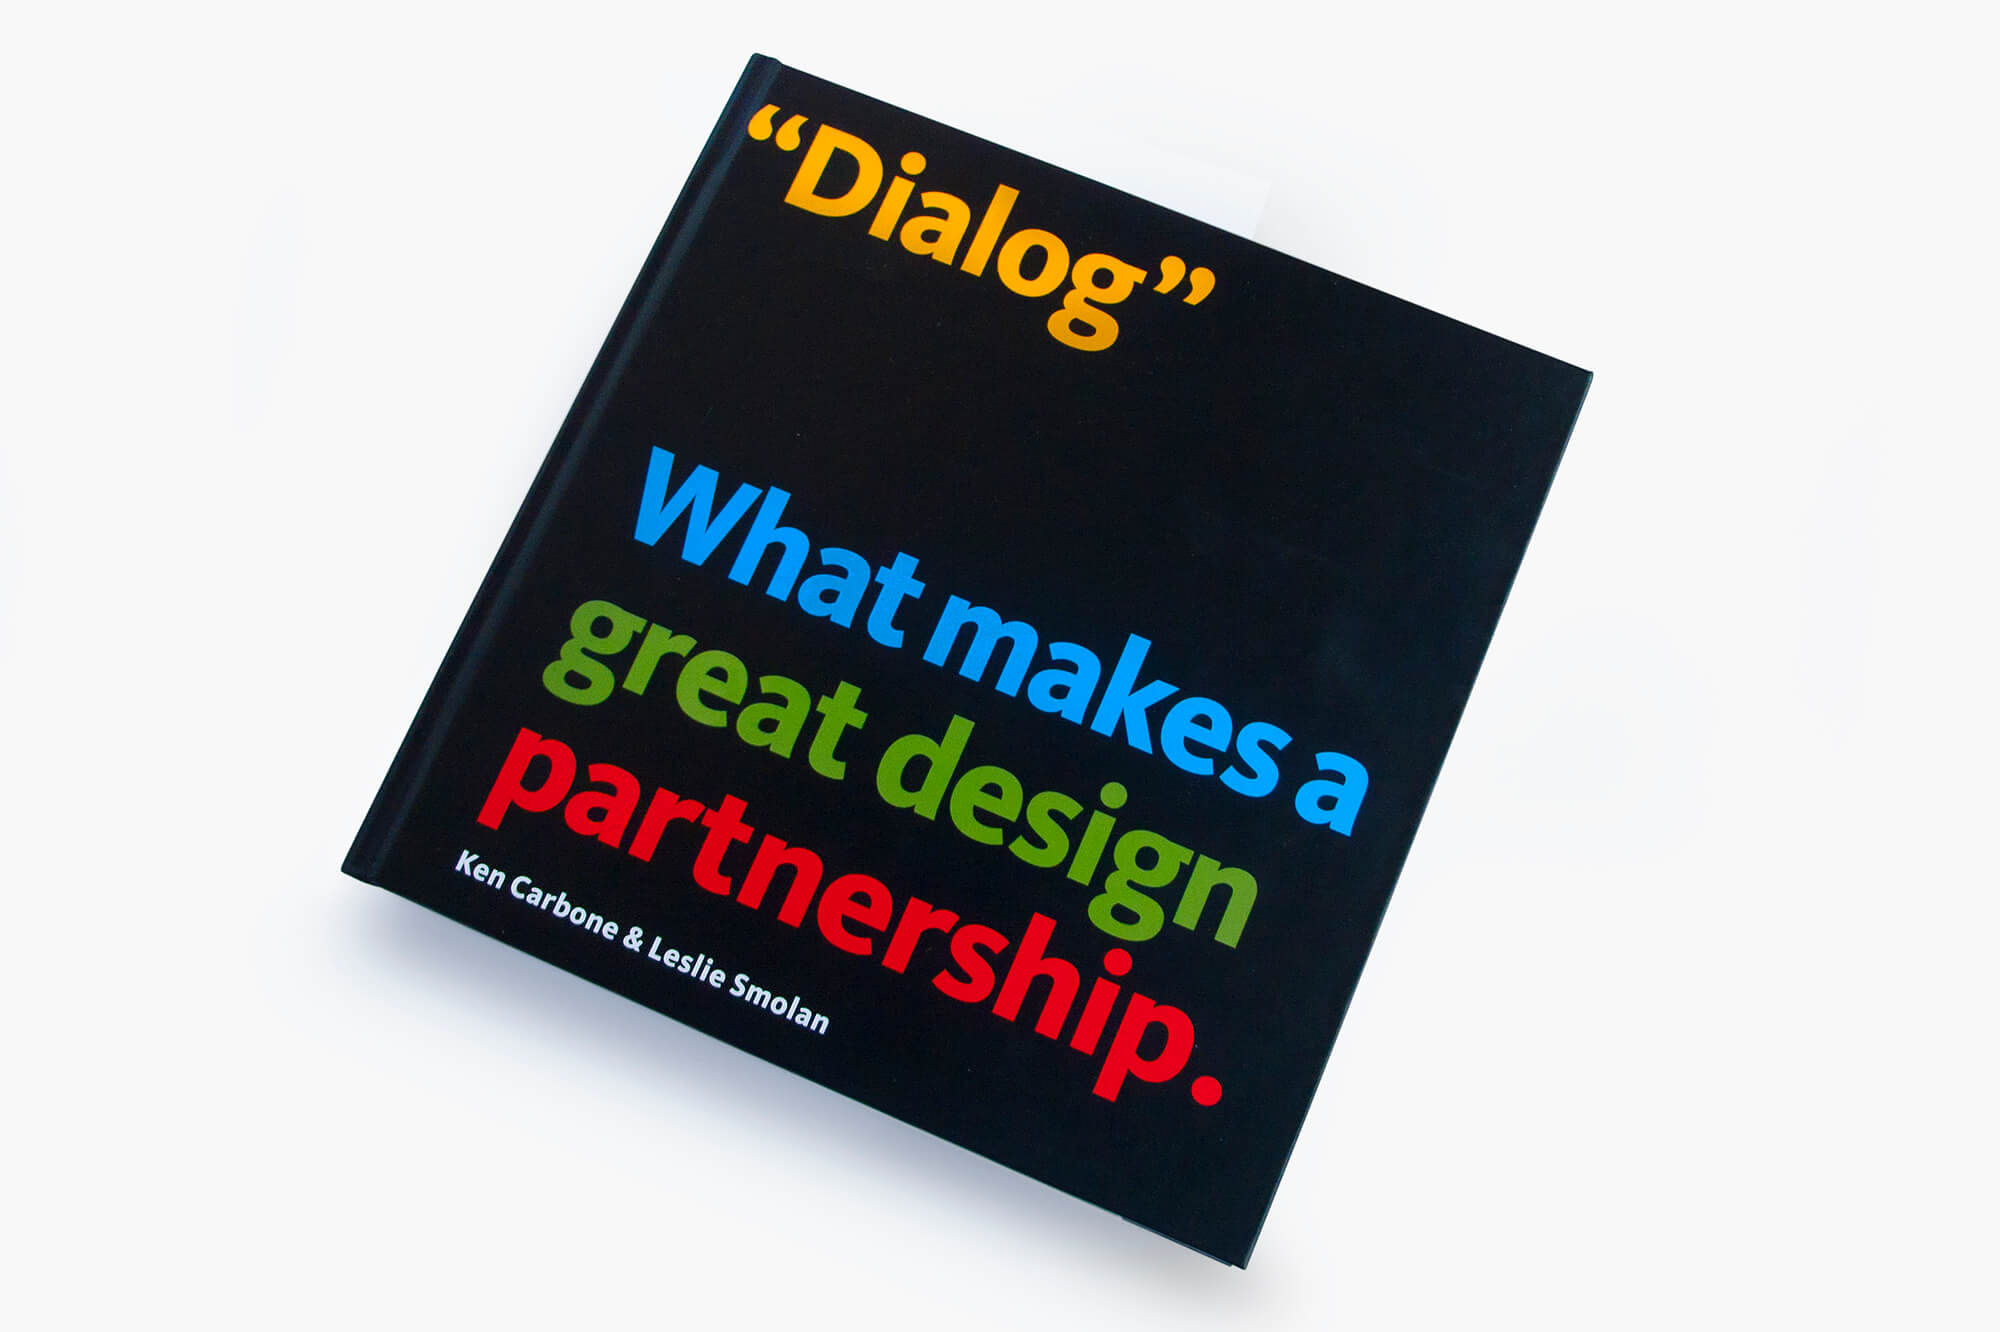 Dialog. What makes a great design partnership. Ken Carbone, Leslie Smolan